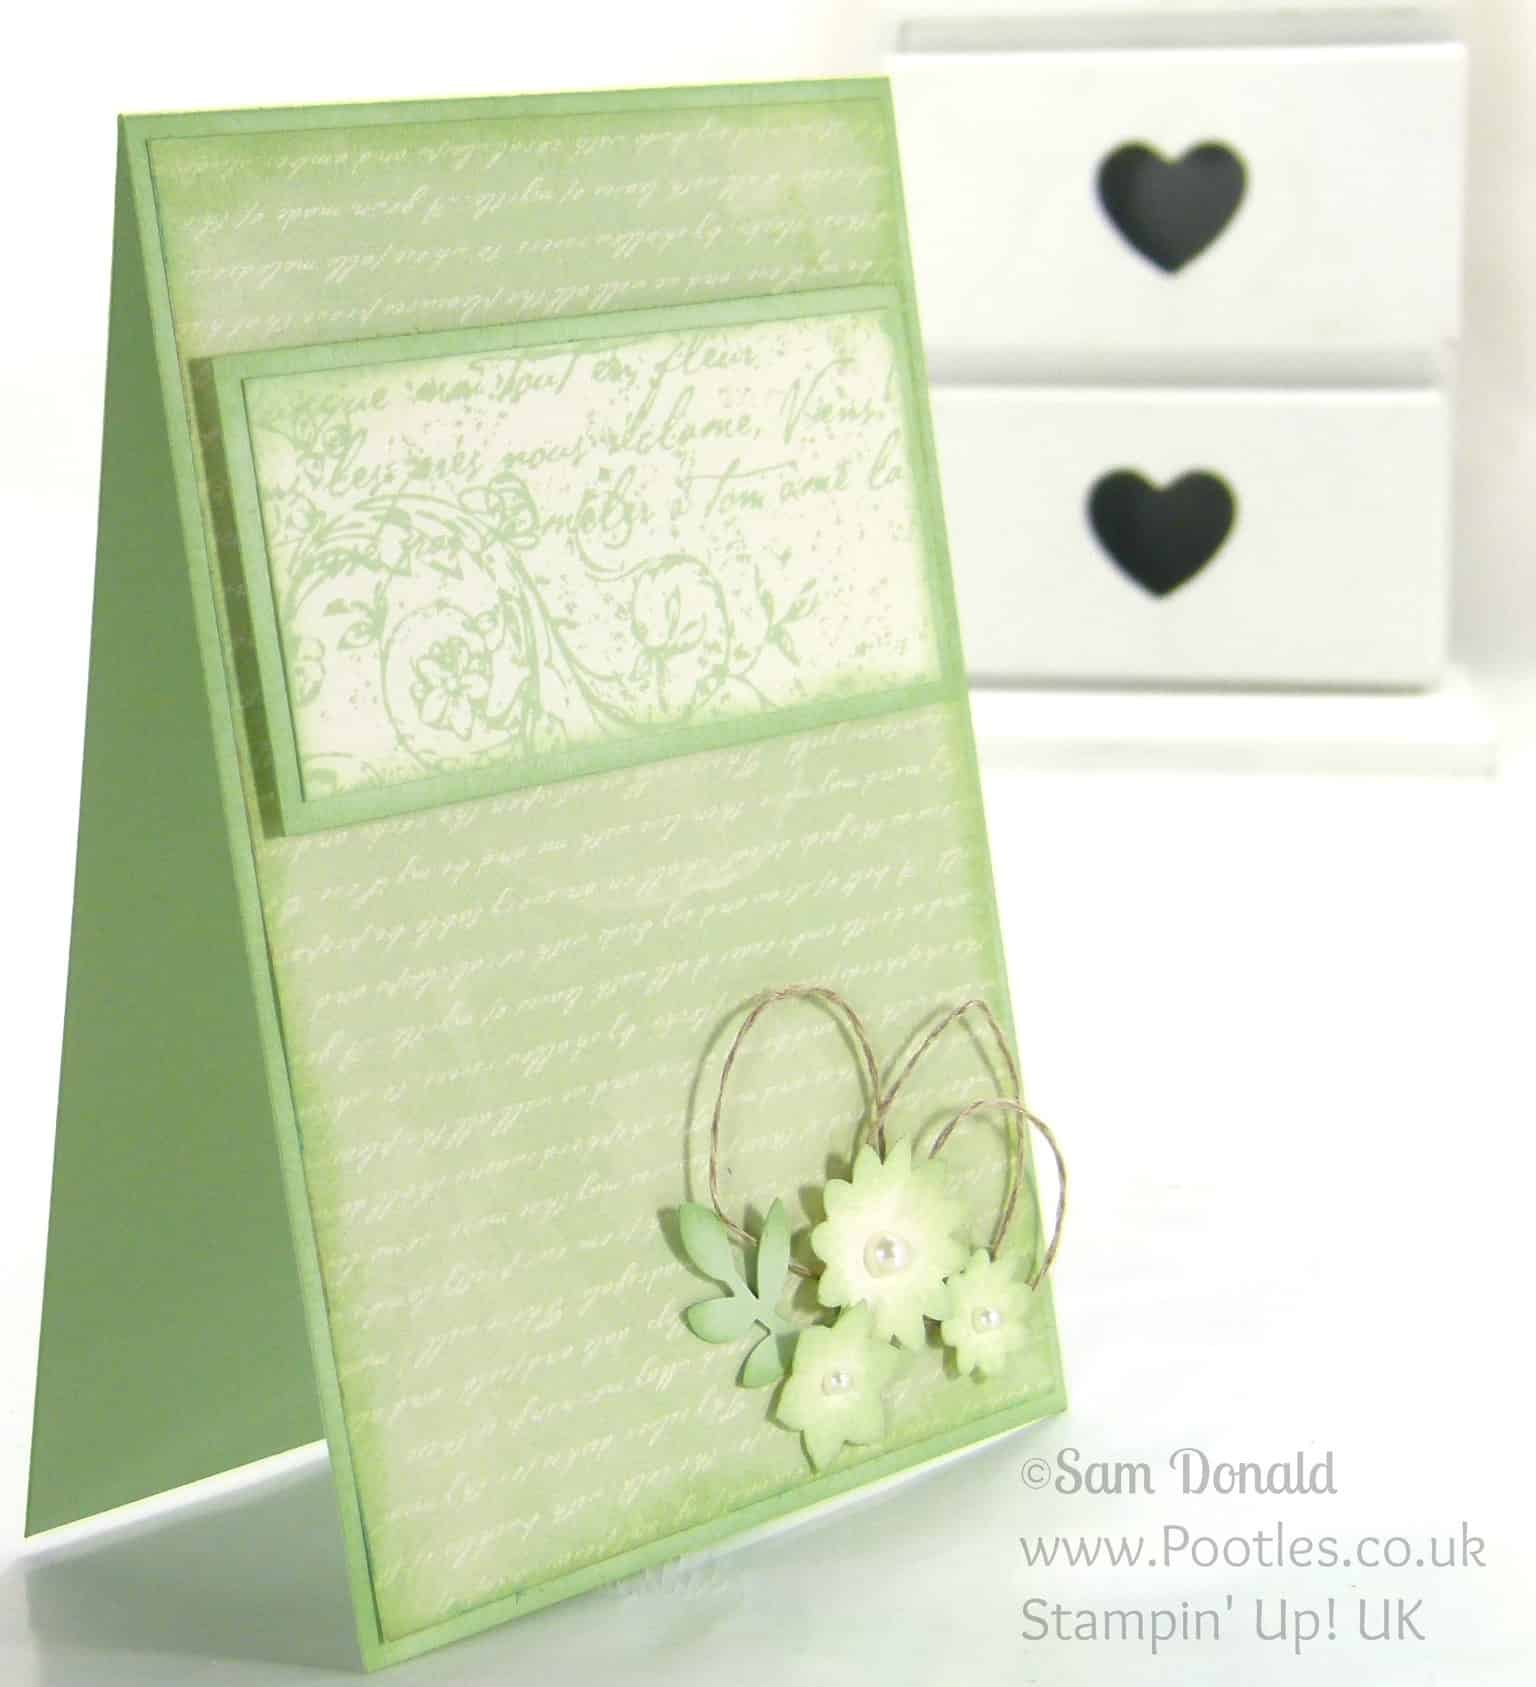 Stampin' Up! UK Independent Demonstrator Pootles. A Very Vintage Venetian Romance. Upside Down...